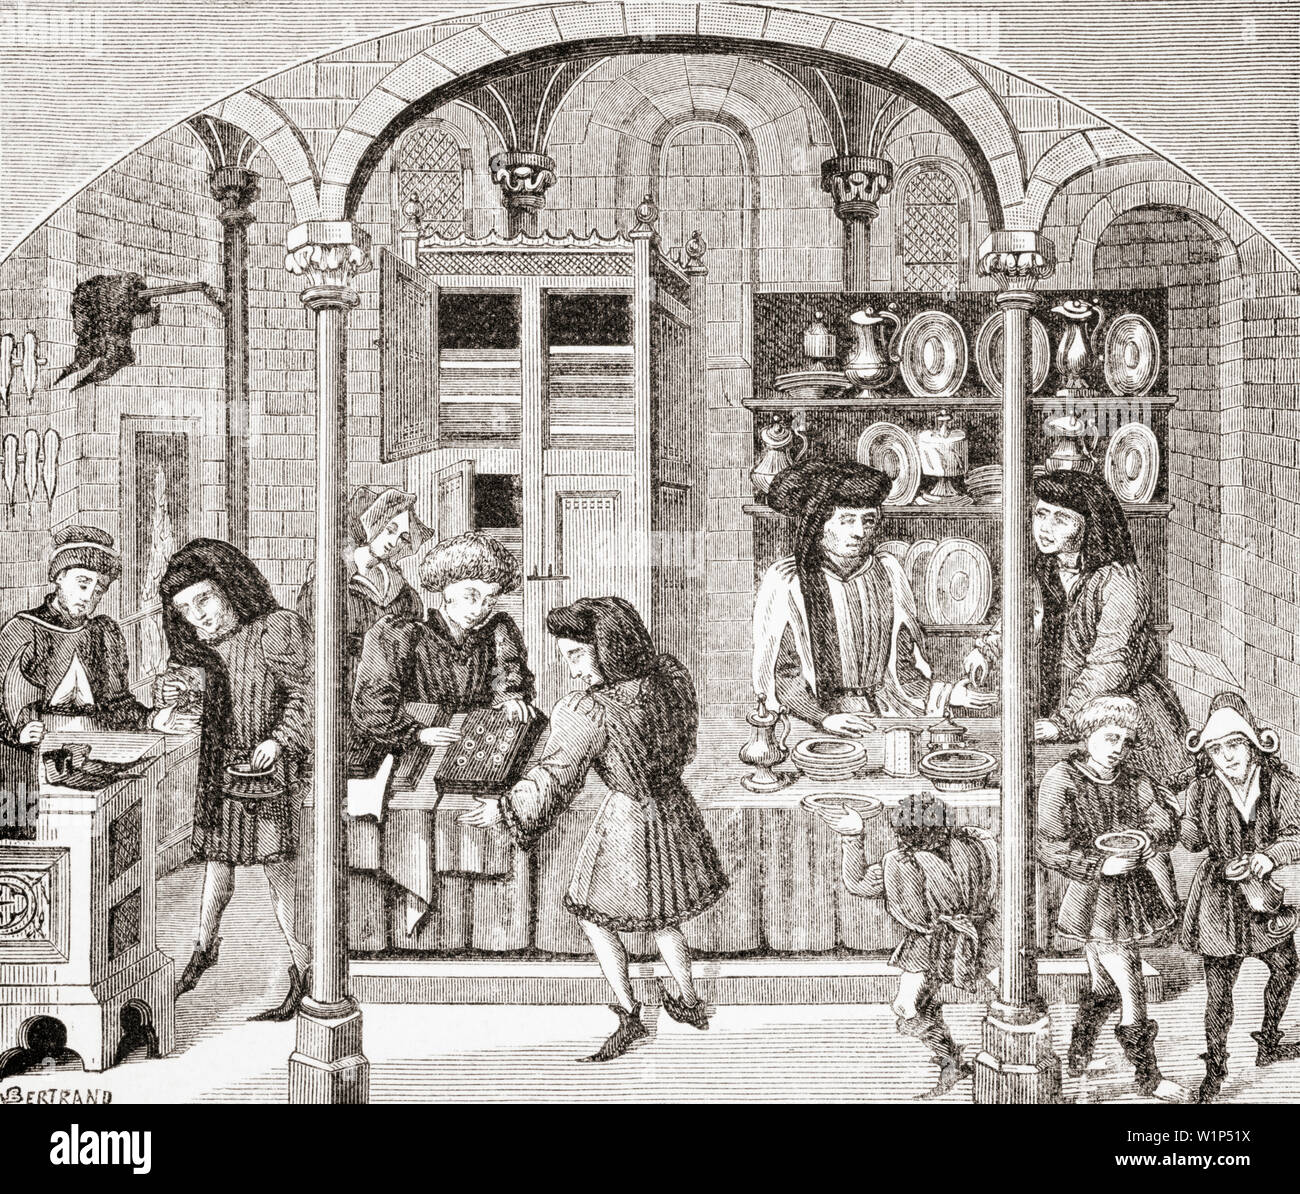 Shops under Covered Market. Goldsmith, Dealer in Stuffs and Shoemaker. After a miniature in Aristotles Ethics and Politics in 15th century translation by Nicholas Oresme - Stock Image